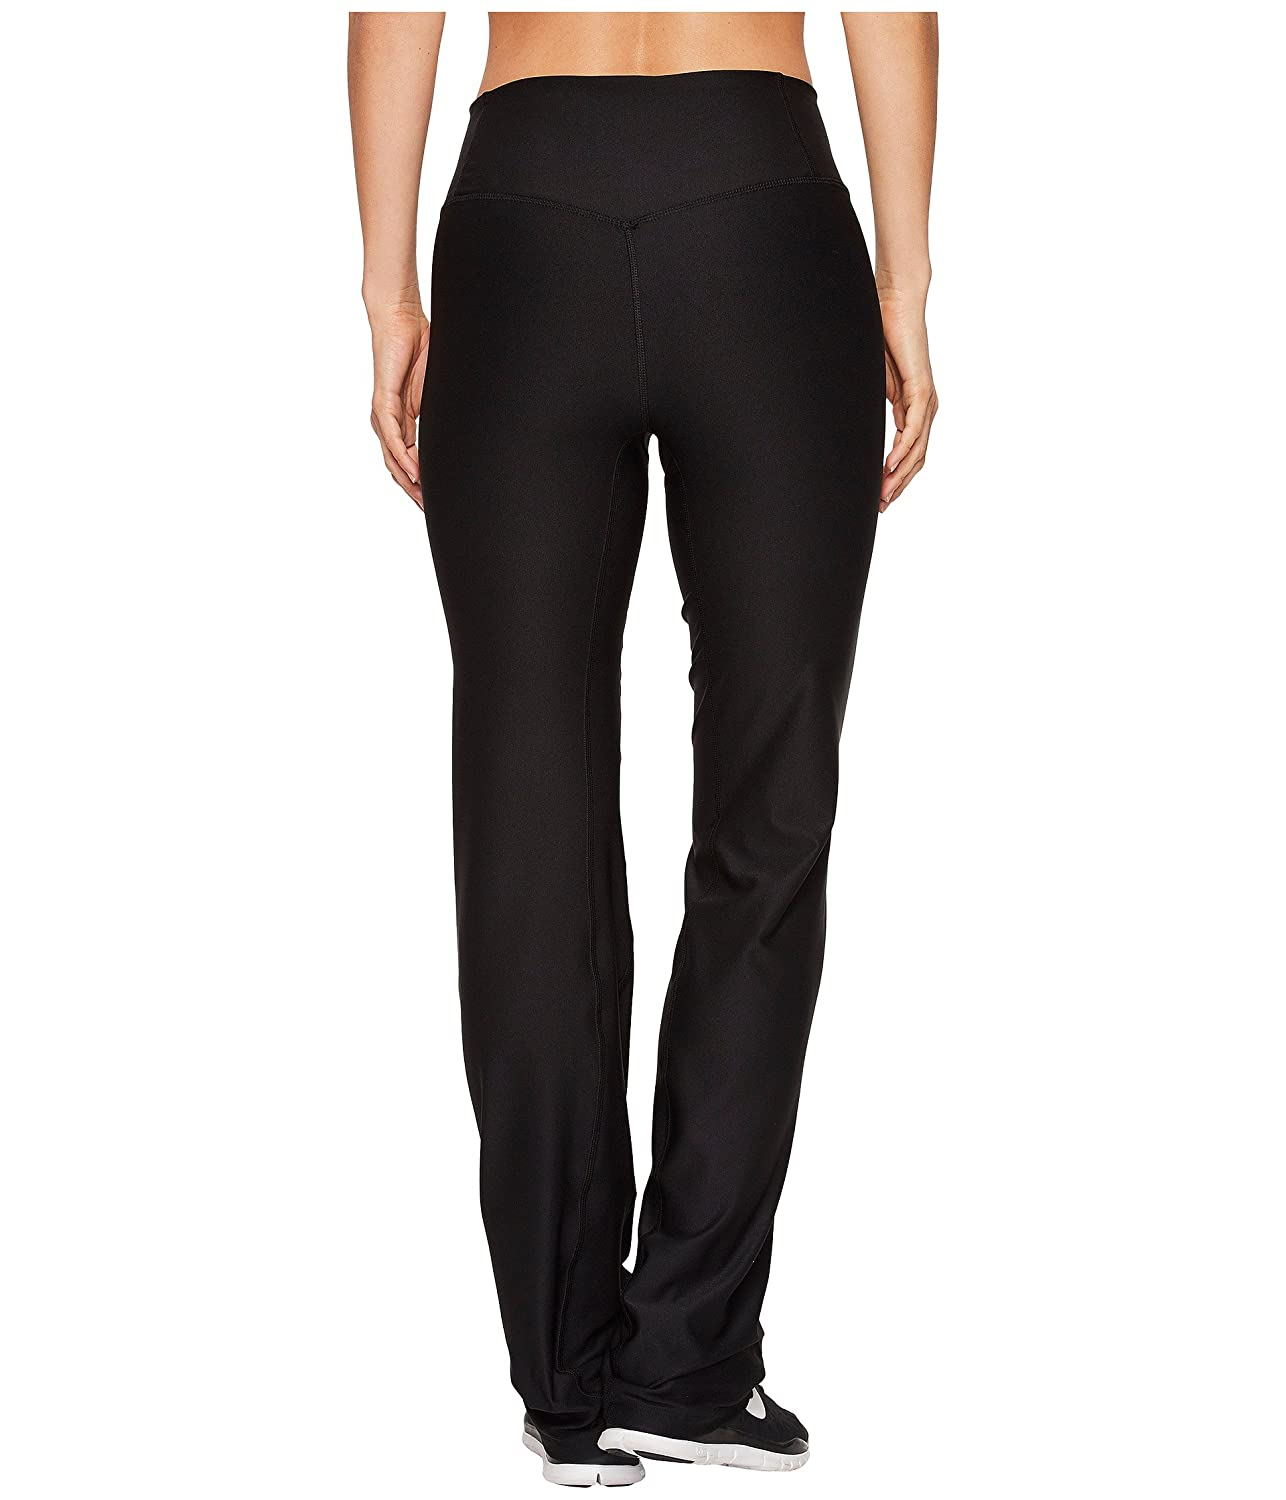 ca654ea76c96f Amazon.com: NIKE Women's Power Training Pants: Clothing